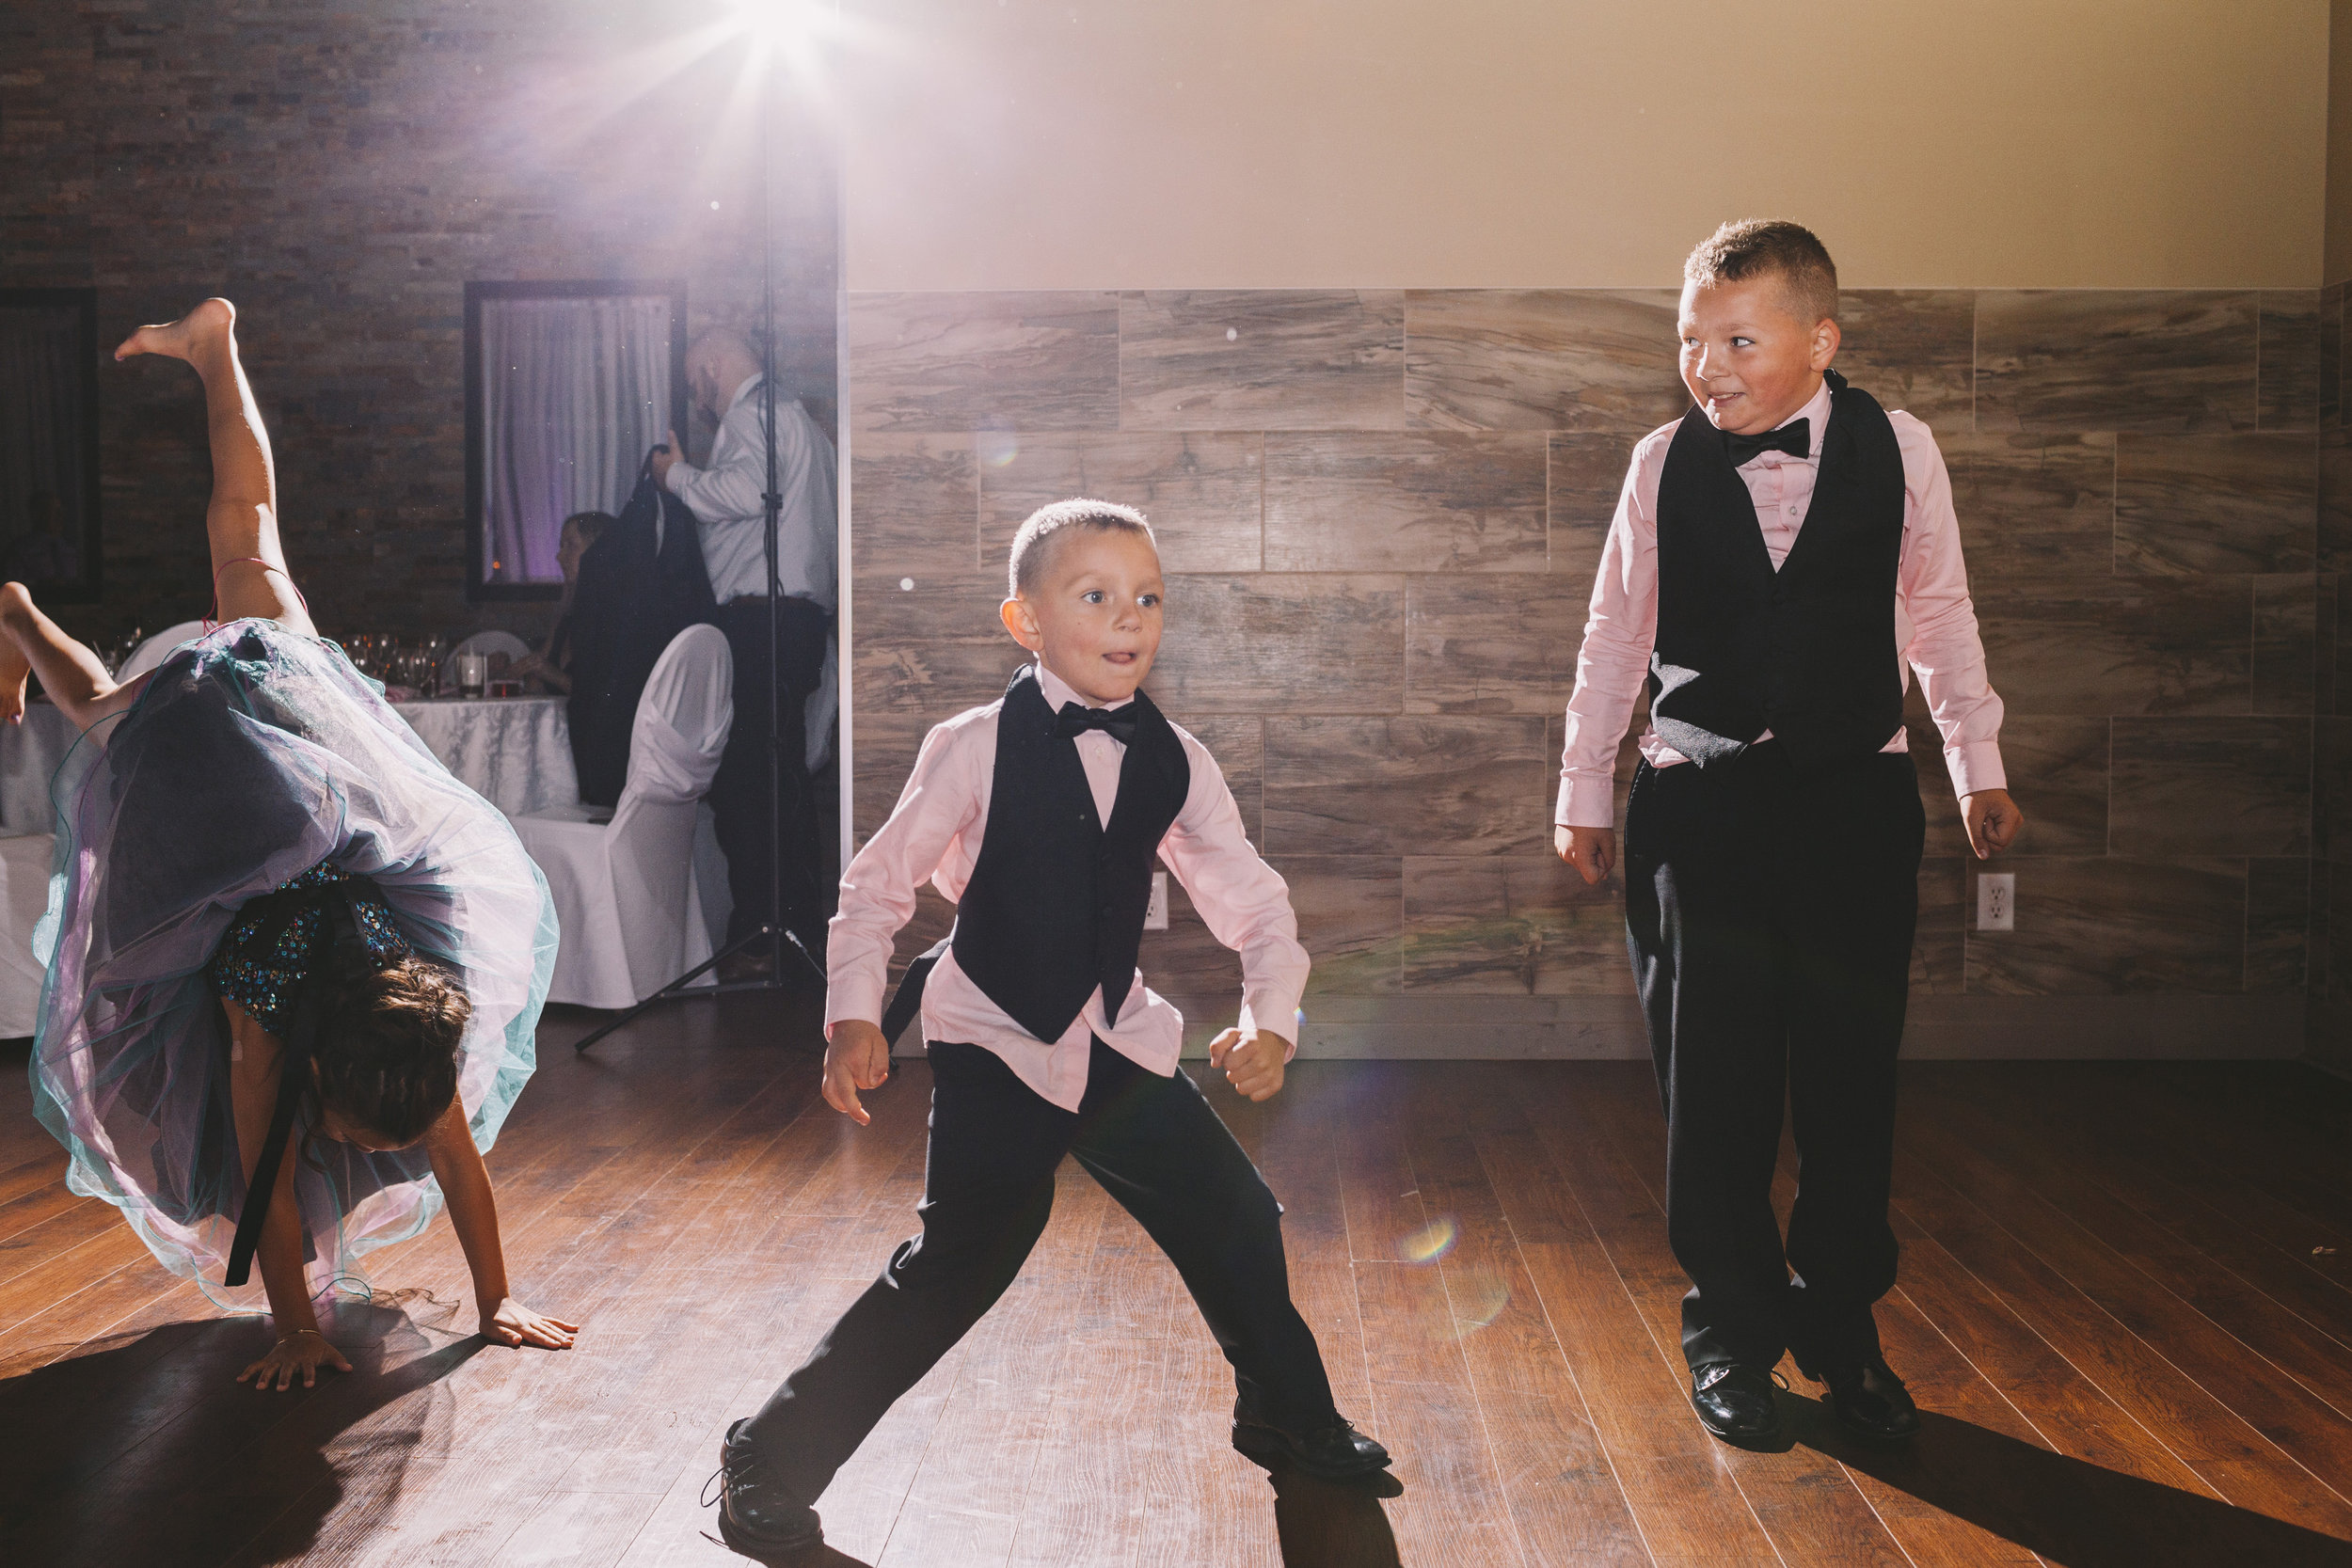 Dancing Kids at a Wedding Reception